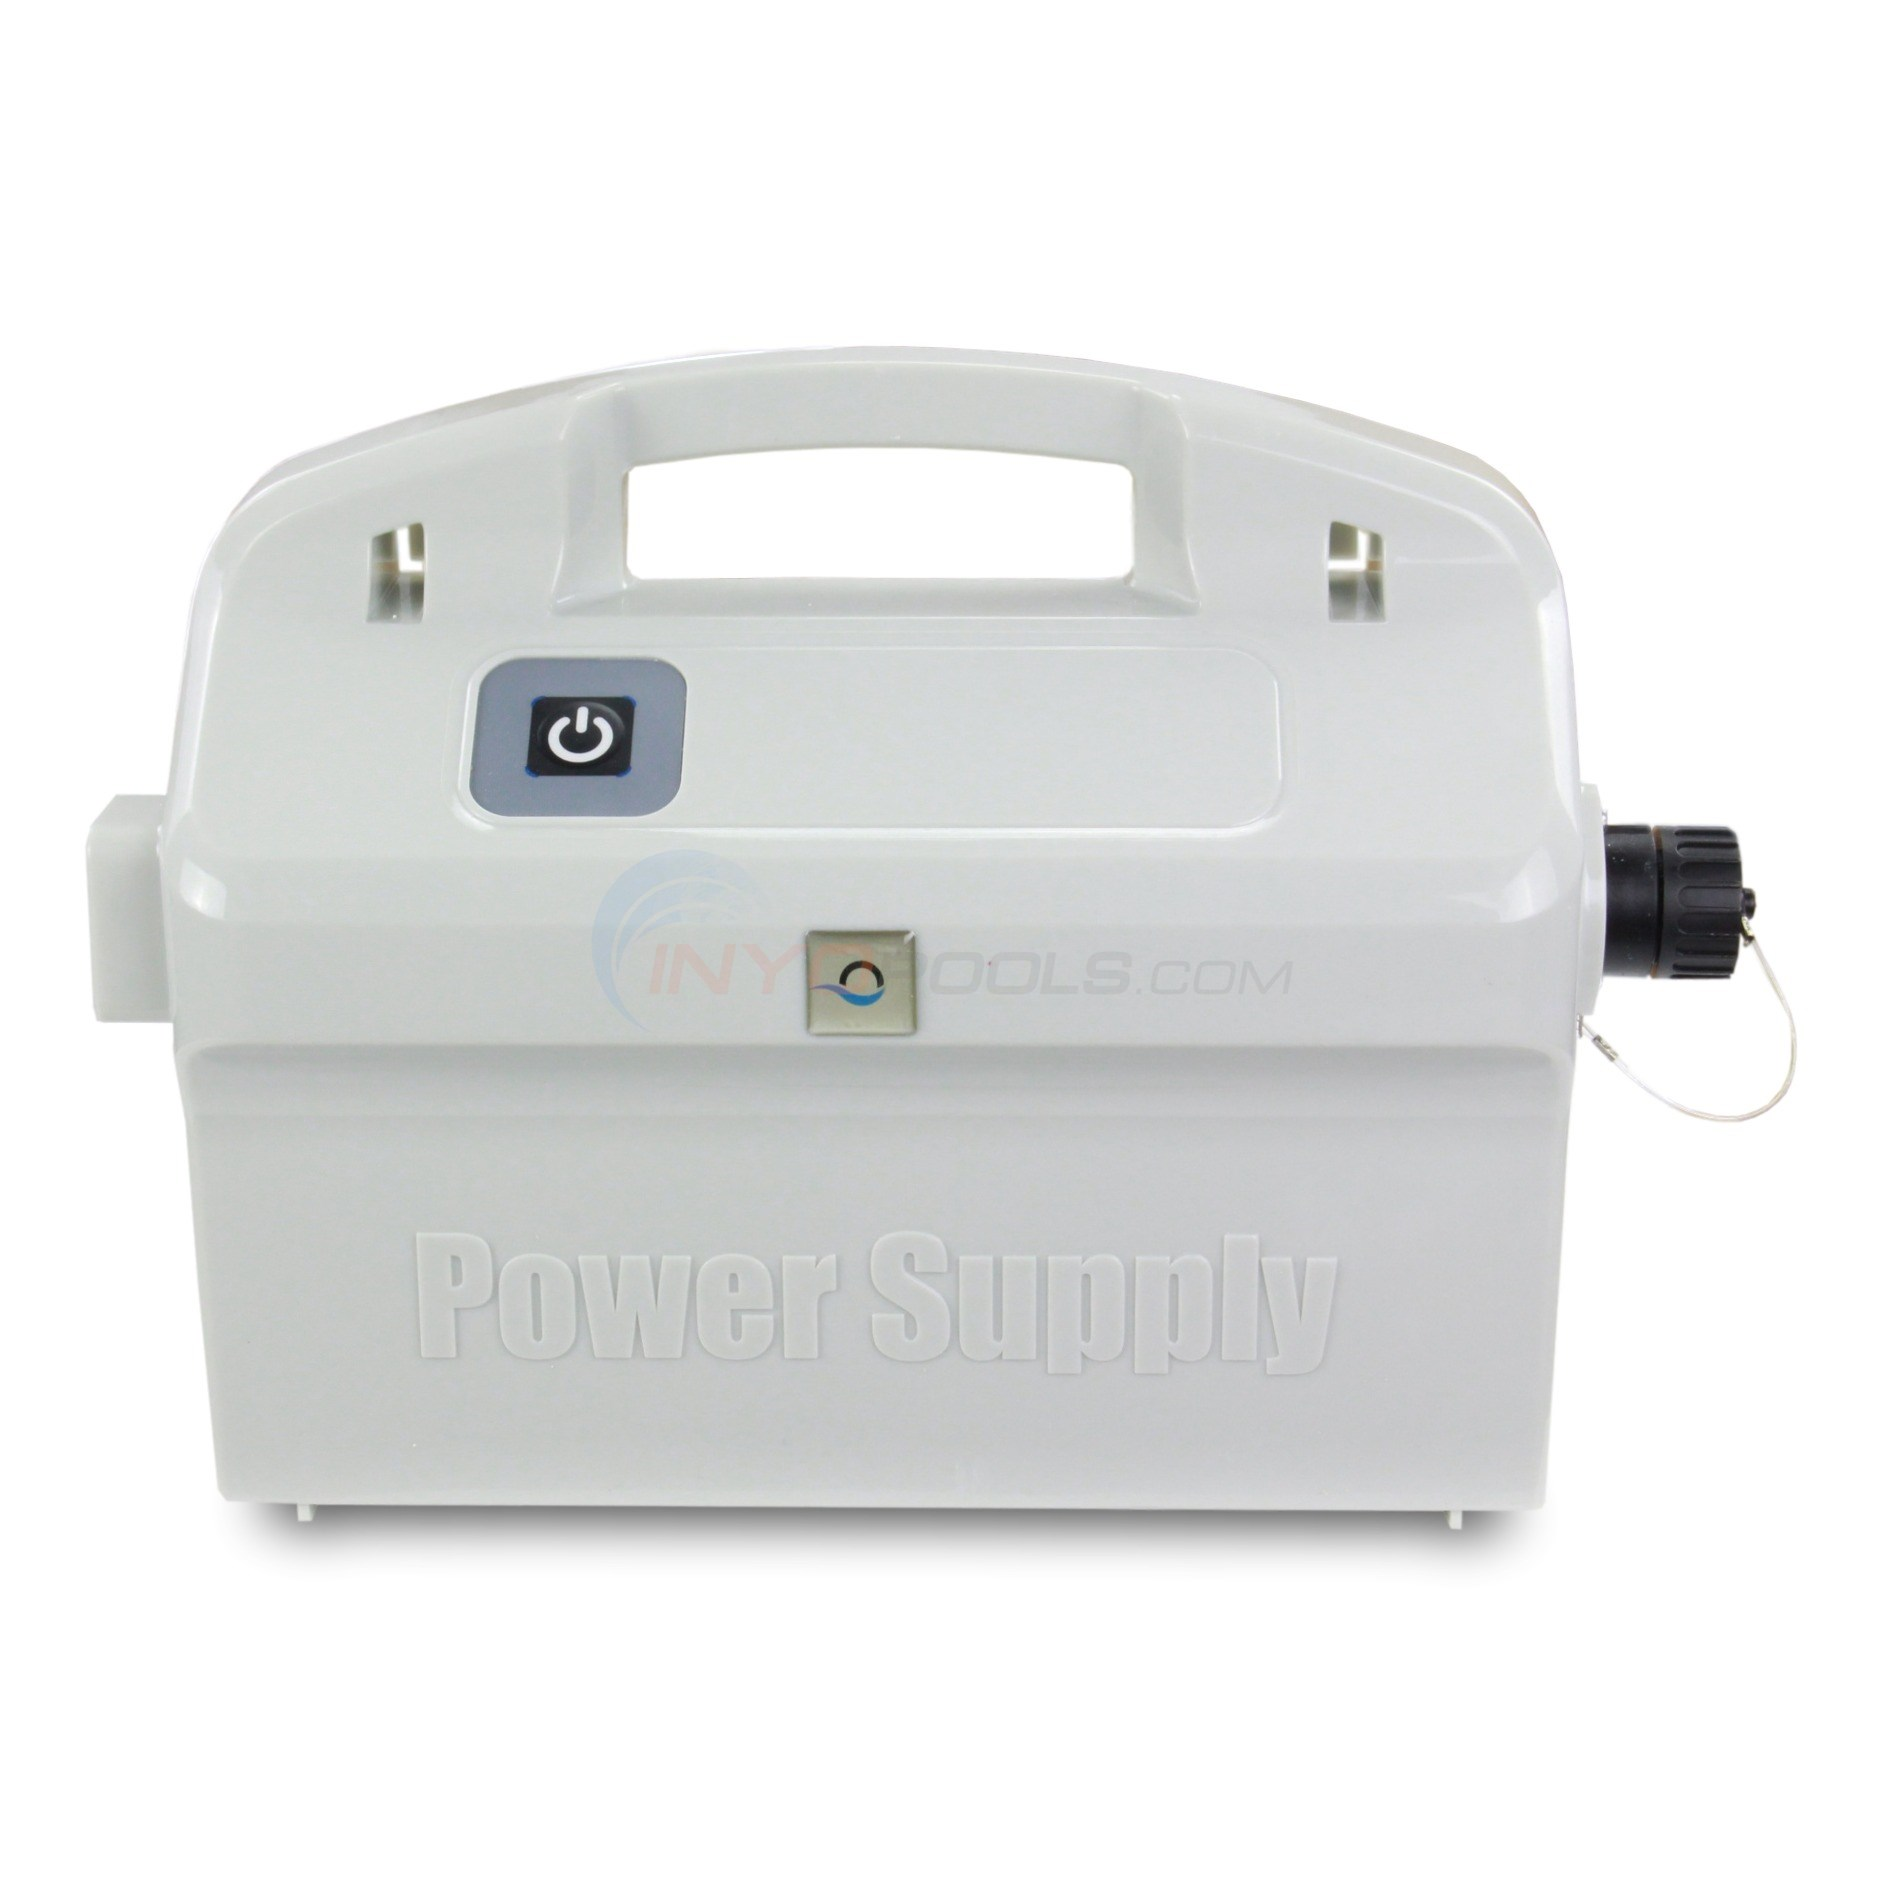 Maytronics Dolphin Power Supply (9995670-US-ASSY)